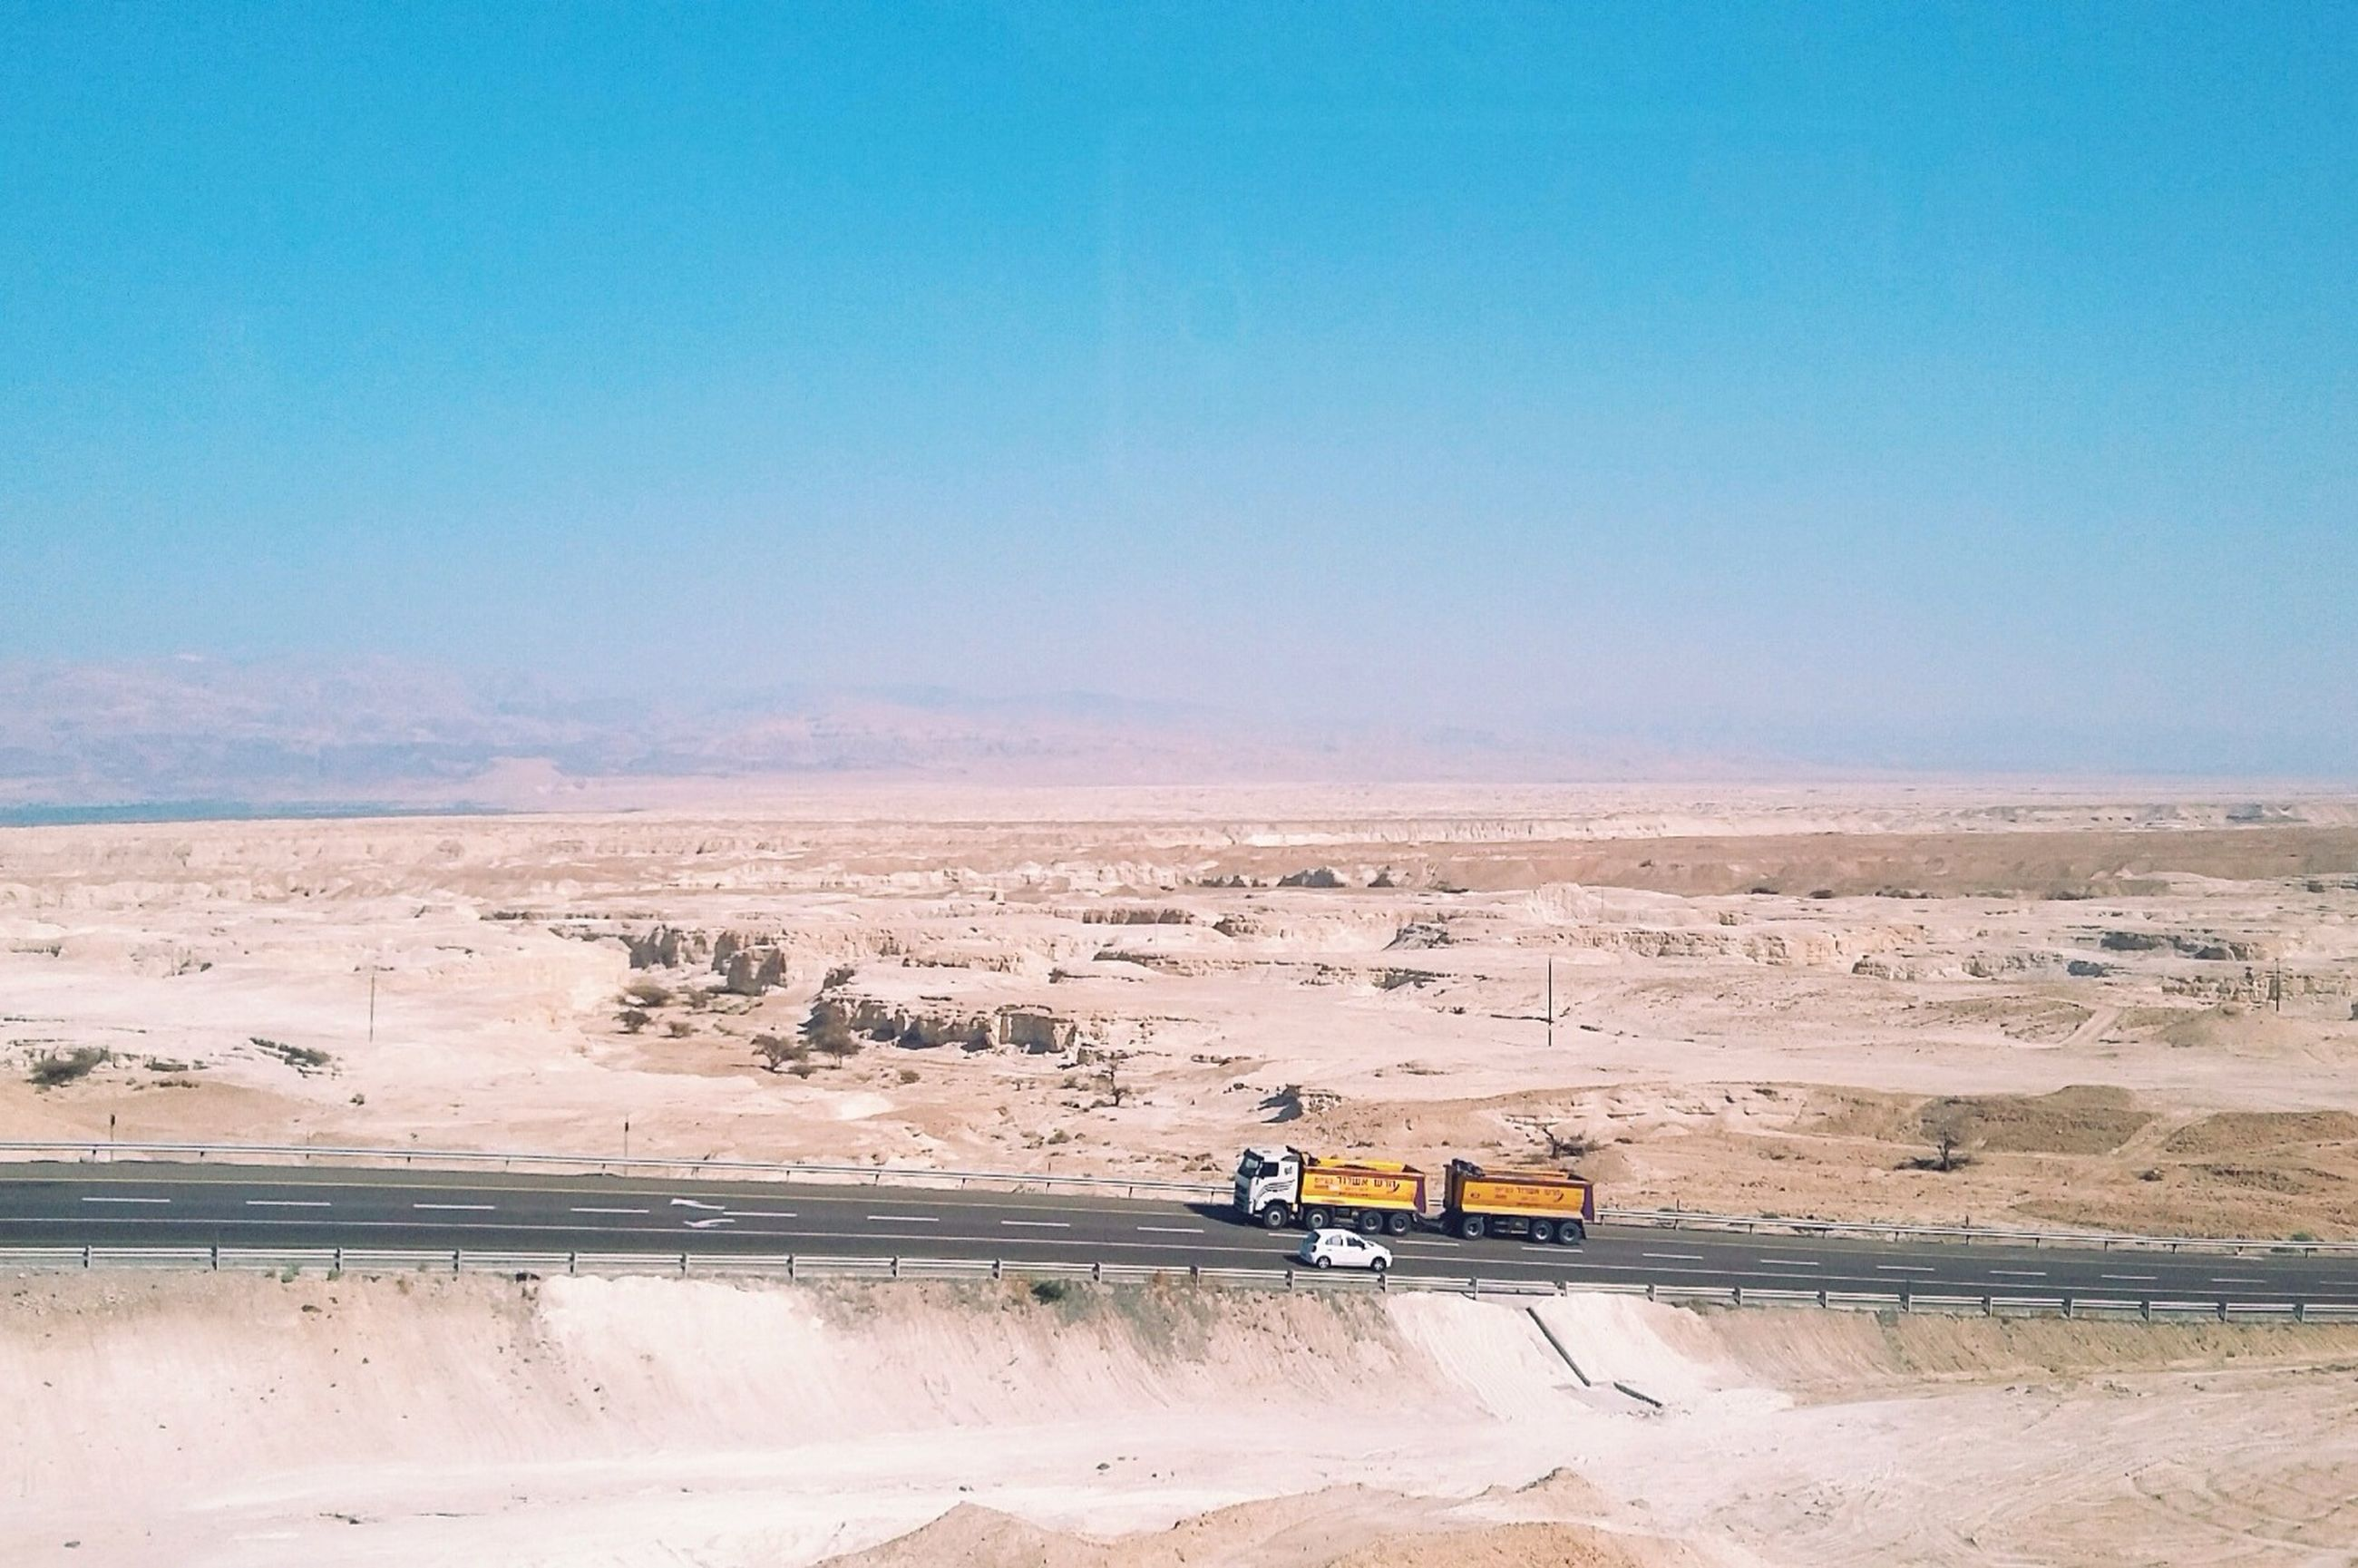 clear sky, sand, copy space, beach, transportation, blue, tranquility, tranquil scene, nature, landscape, scenics, shore, mode of transport, outdoors, sunlight, sky, beauty in nature, day, no people, non-urban scene